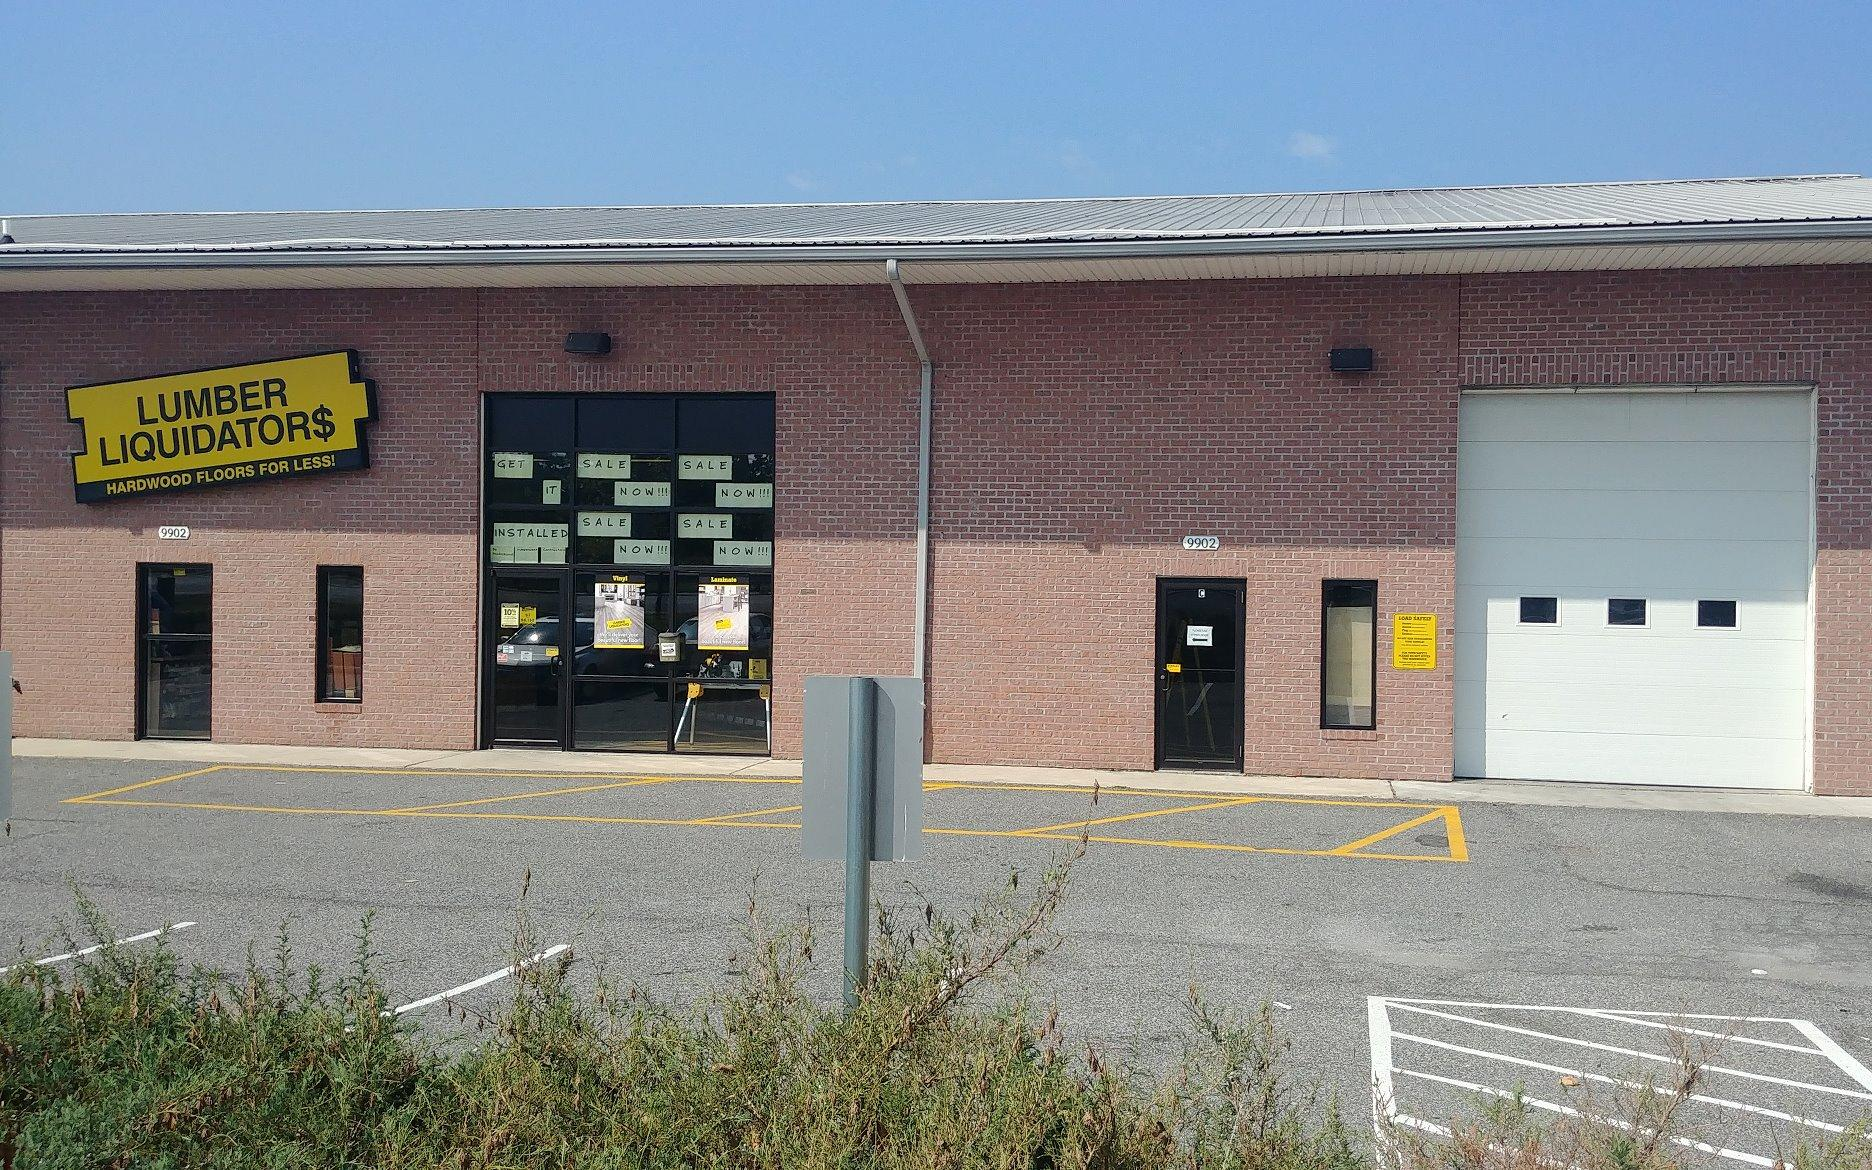 Lumber Liquidators Flooring #1361 Middle River | 9902 C Pulaski Highway | Store Front